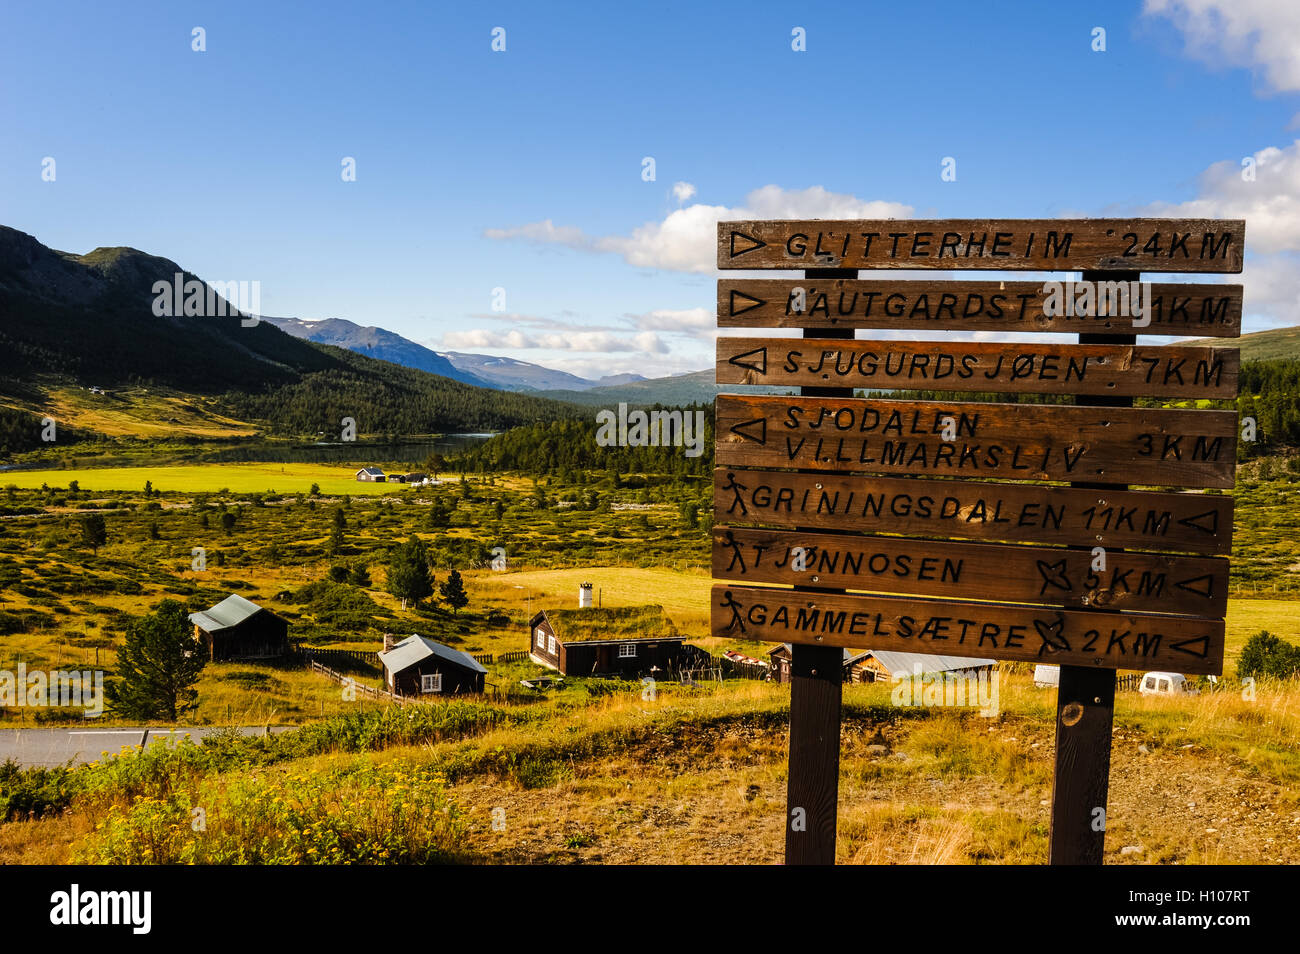 Norway, Oppland, Valdresflya. At the small historic Hindsæter Mountain Hotel. - Stock Image